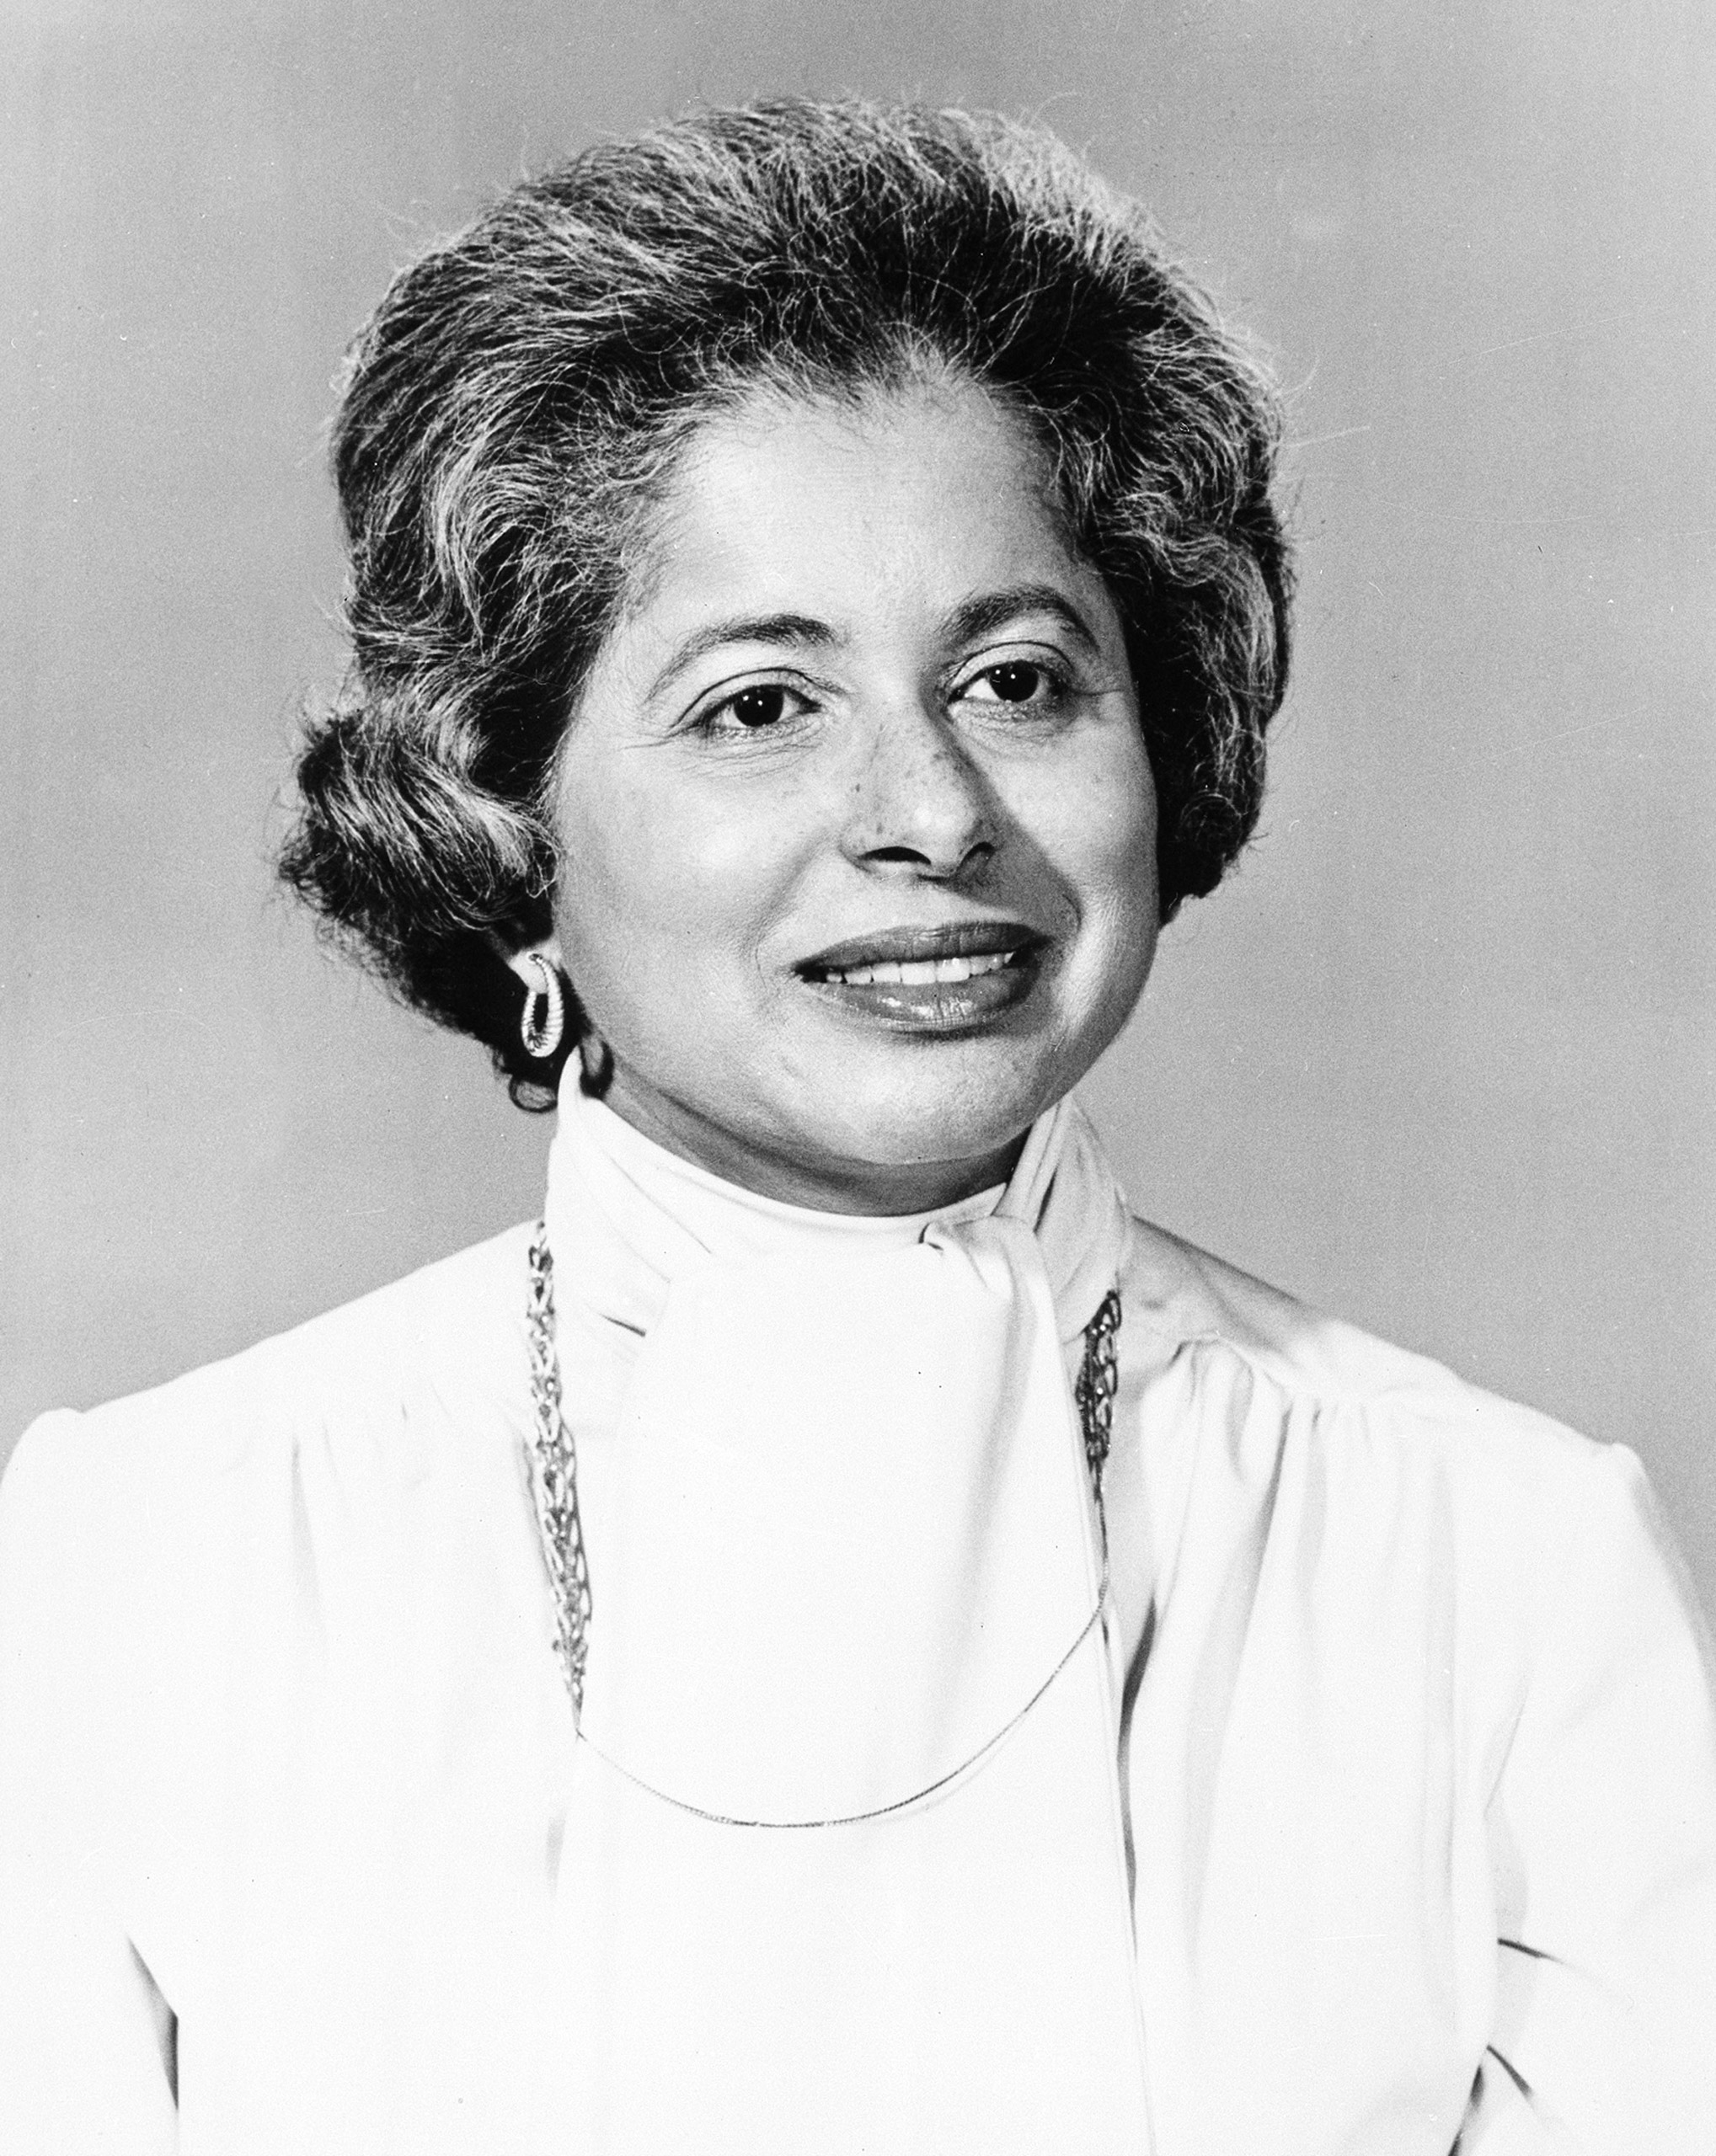 Patricia Roberts Harris, Secretary of the Department of Housing and Urban Development appointed by President Carter. 1979.